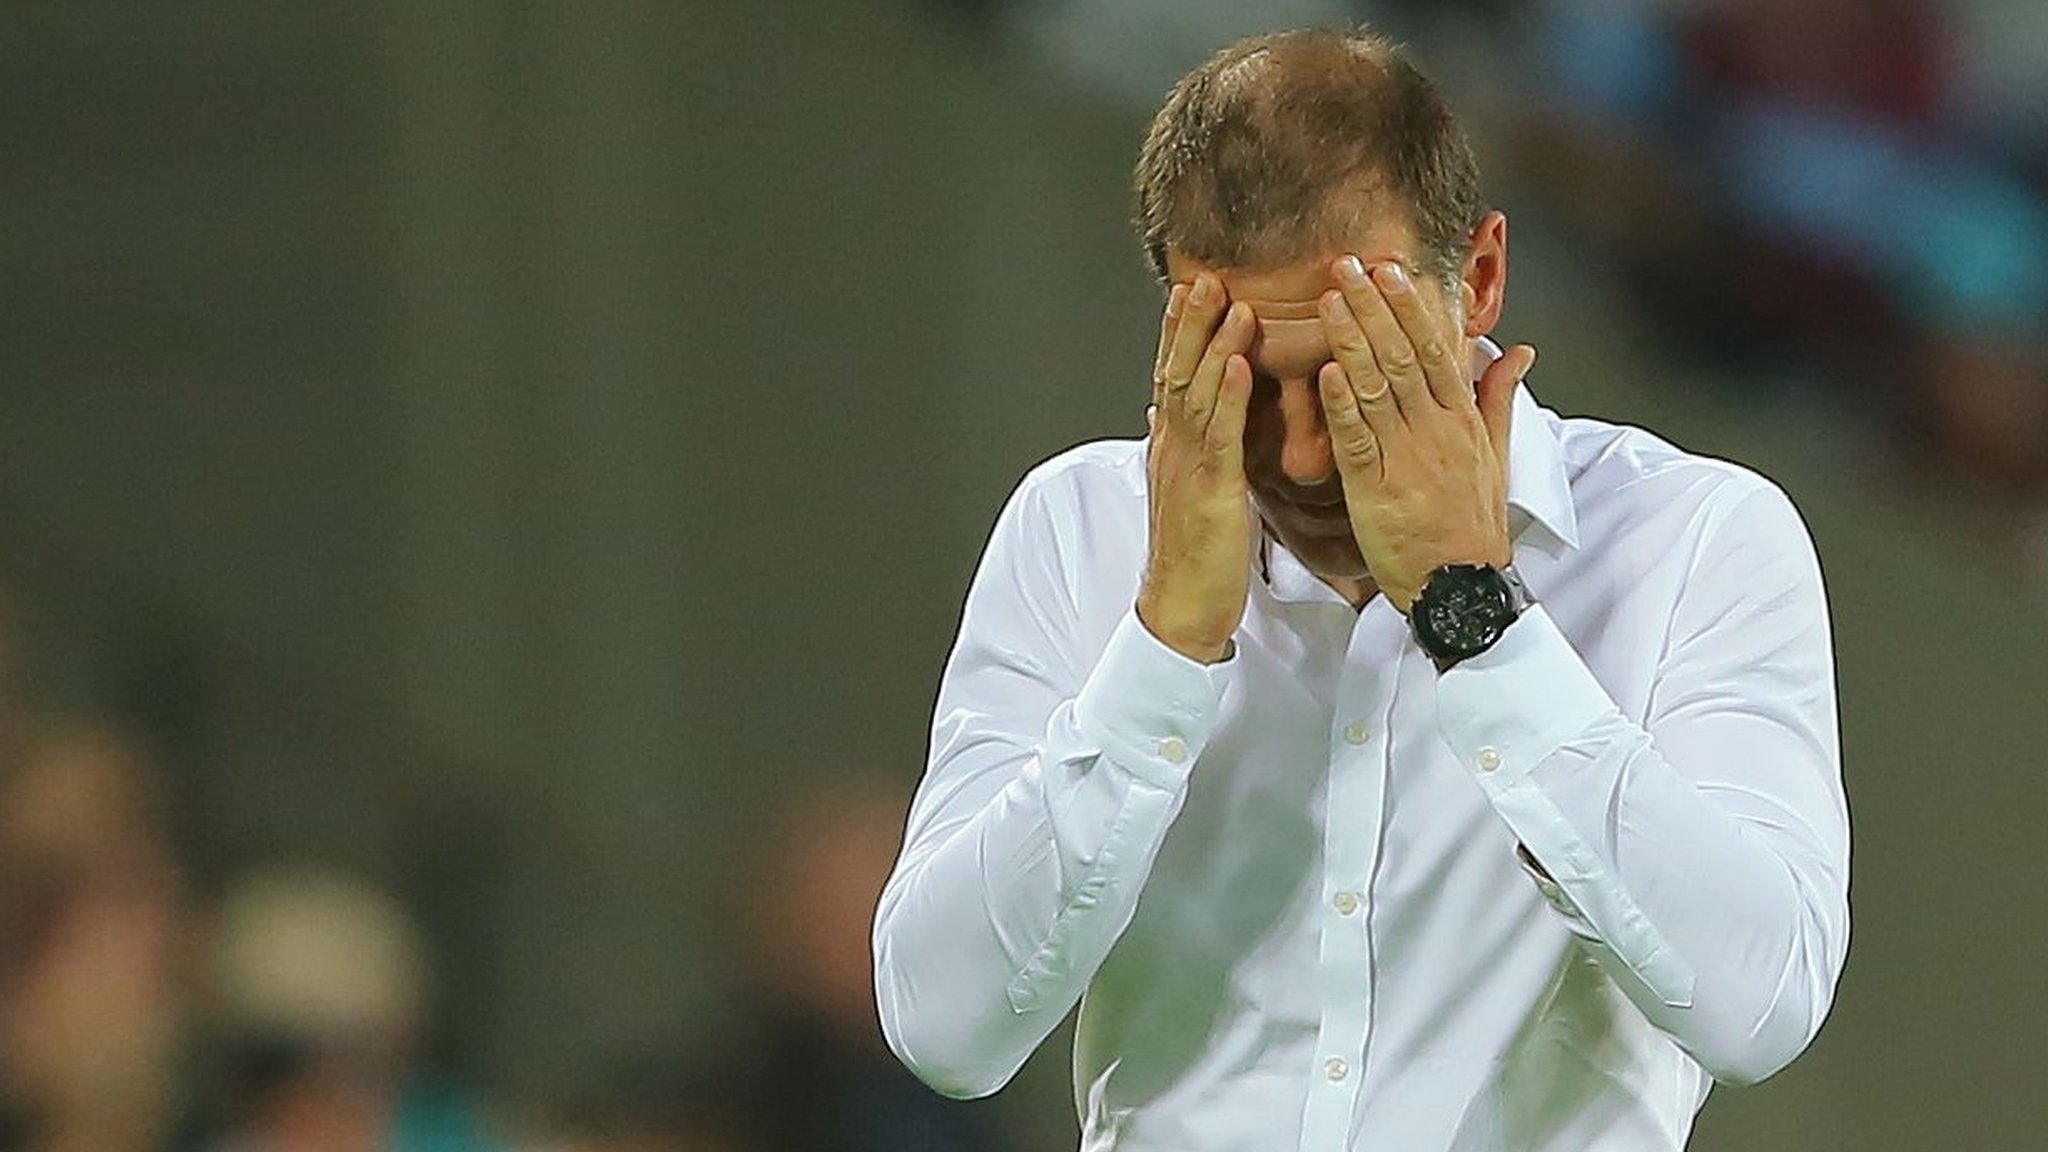 West Ham: Slaven Bilic 'angry' after failing to reach Europa League group stage